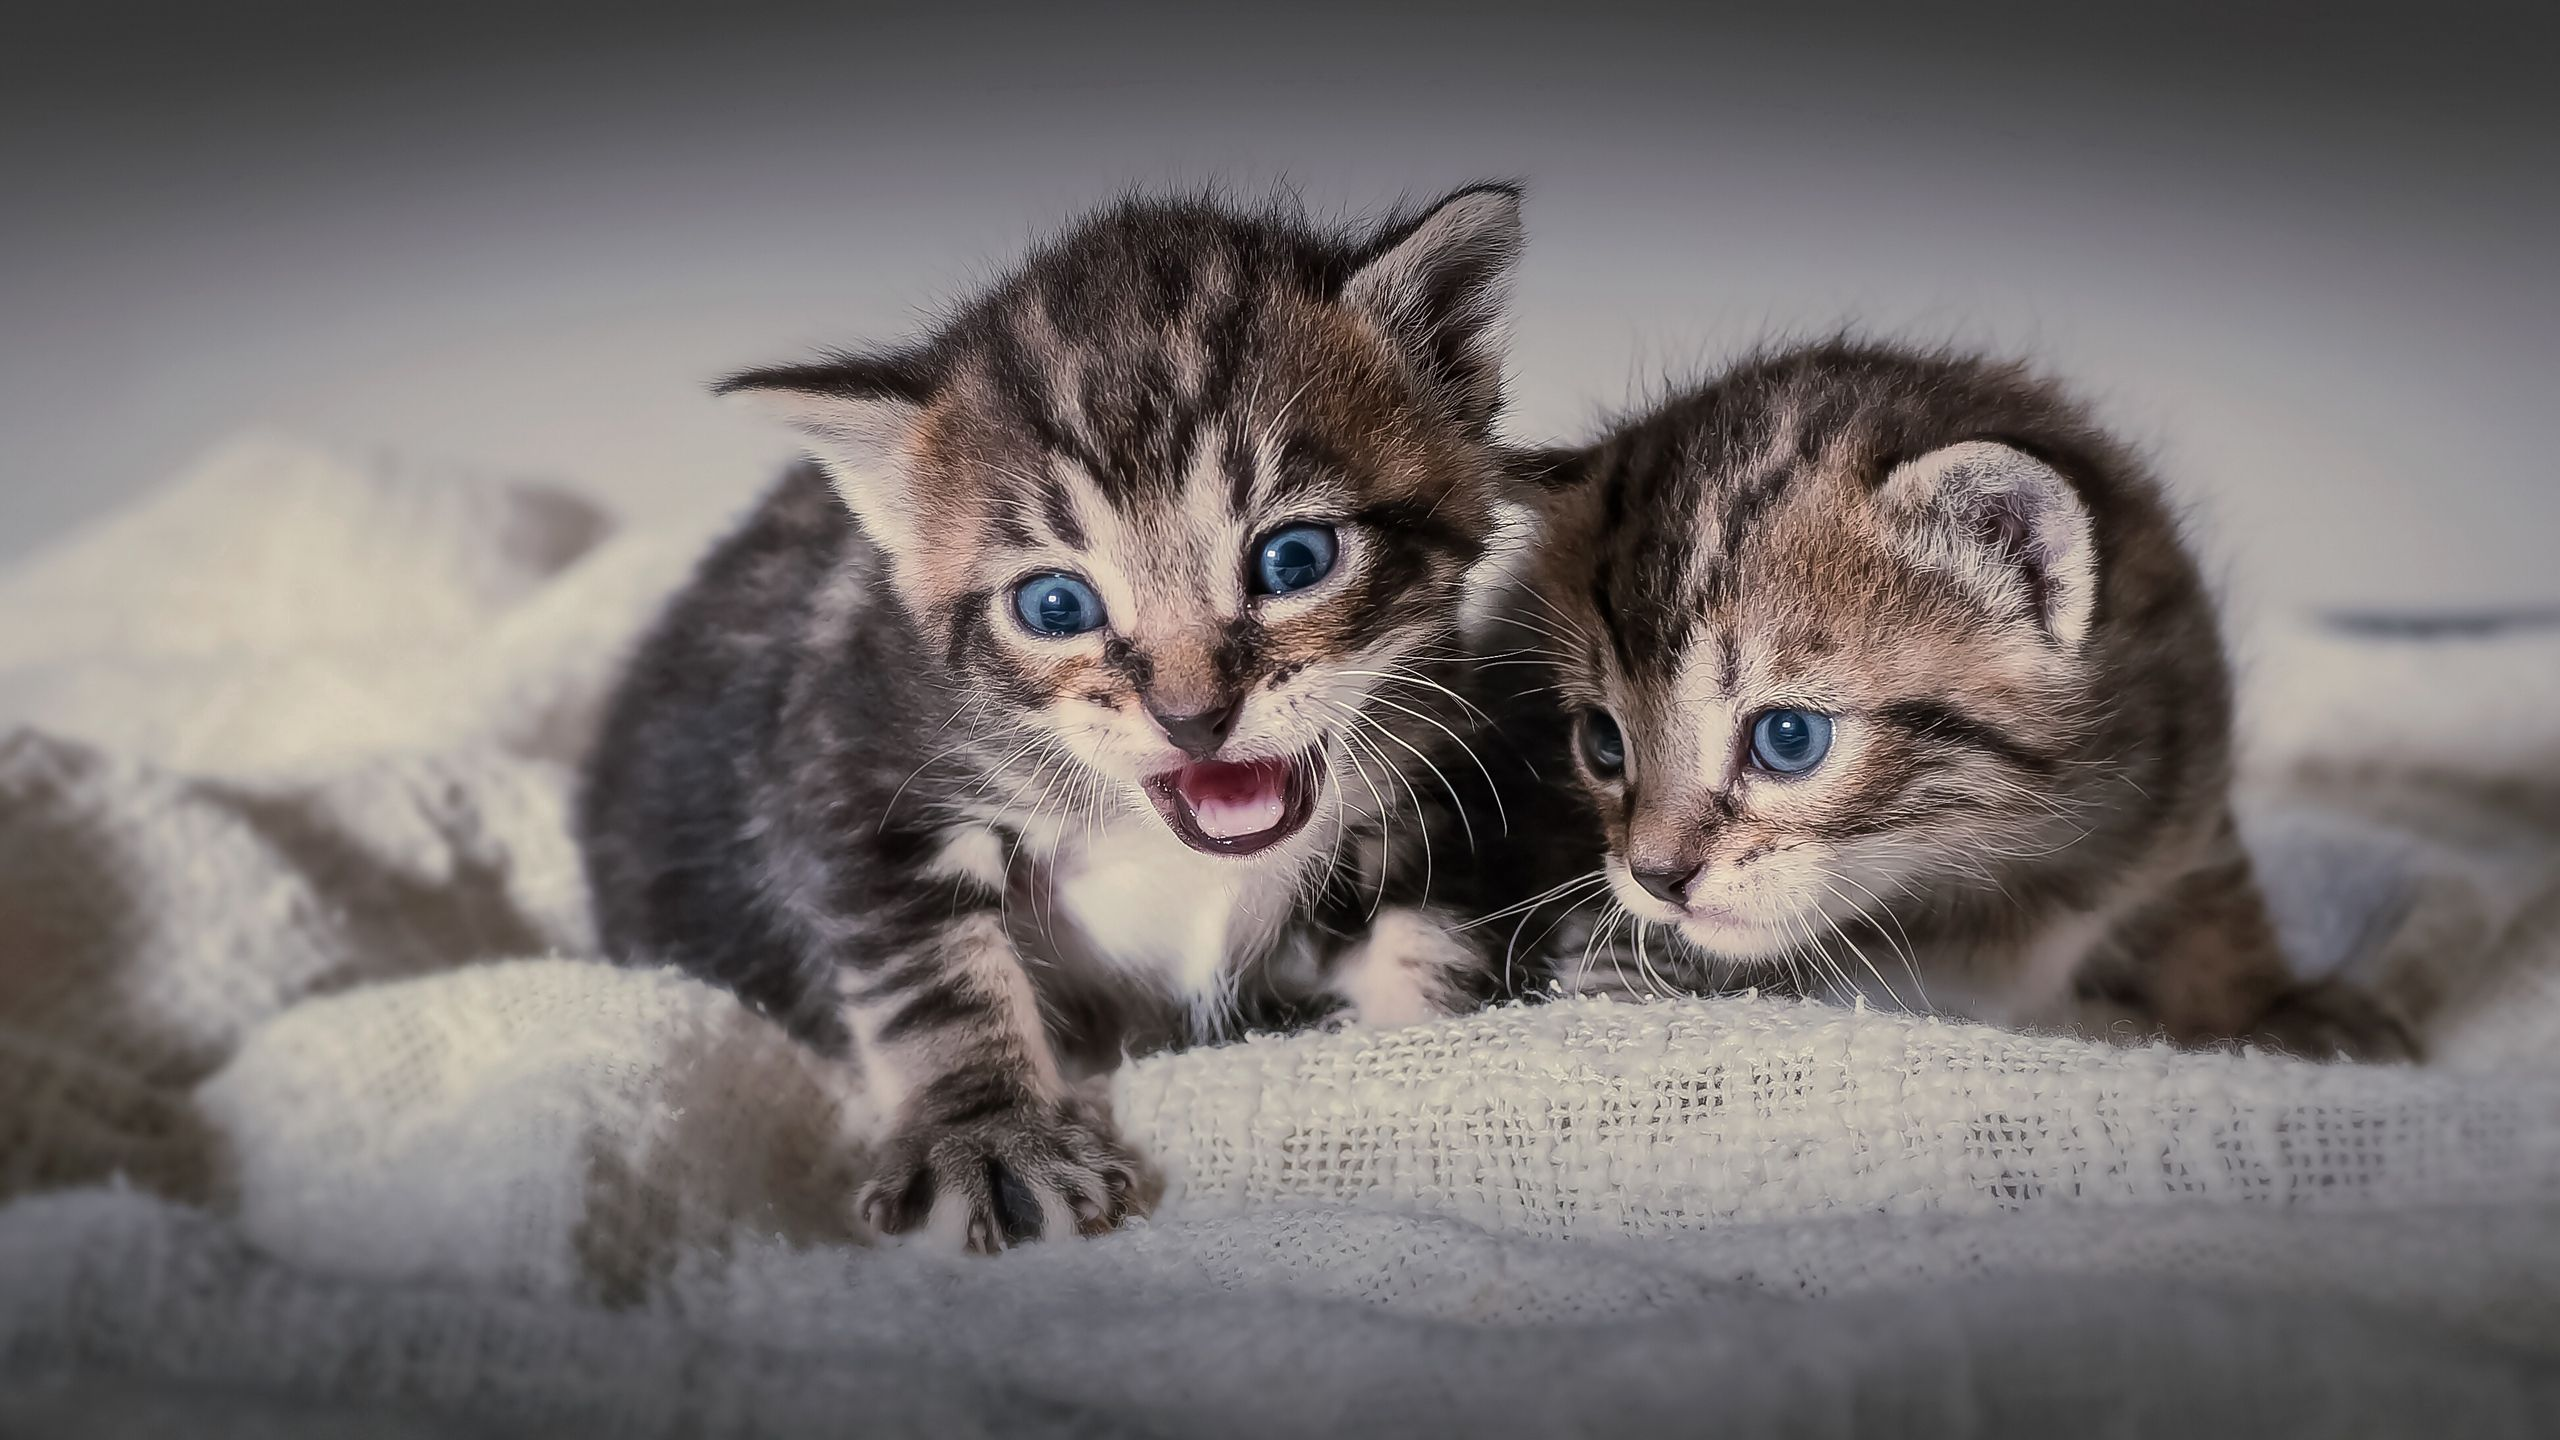 134420 download wallpaper Animals, Cats, Couple, Pair, Fright, Kittens screensavers and pictures for free